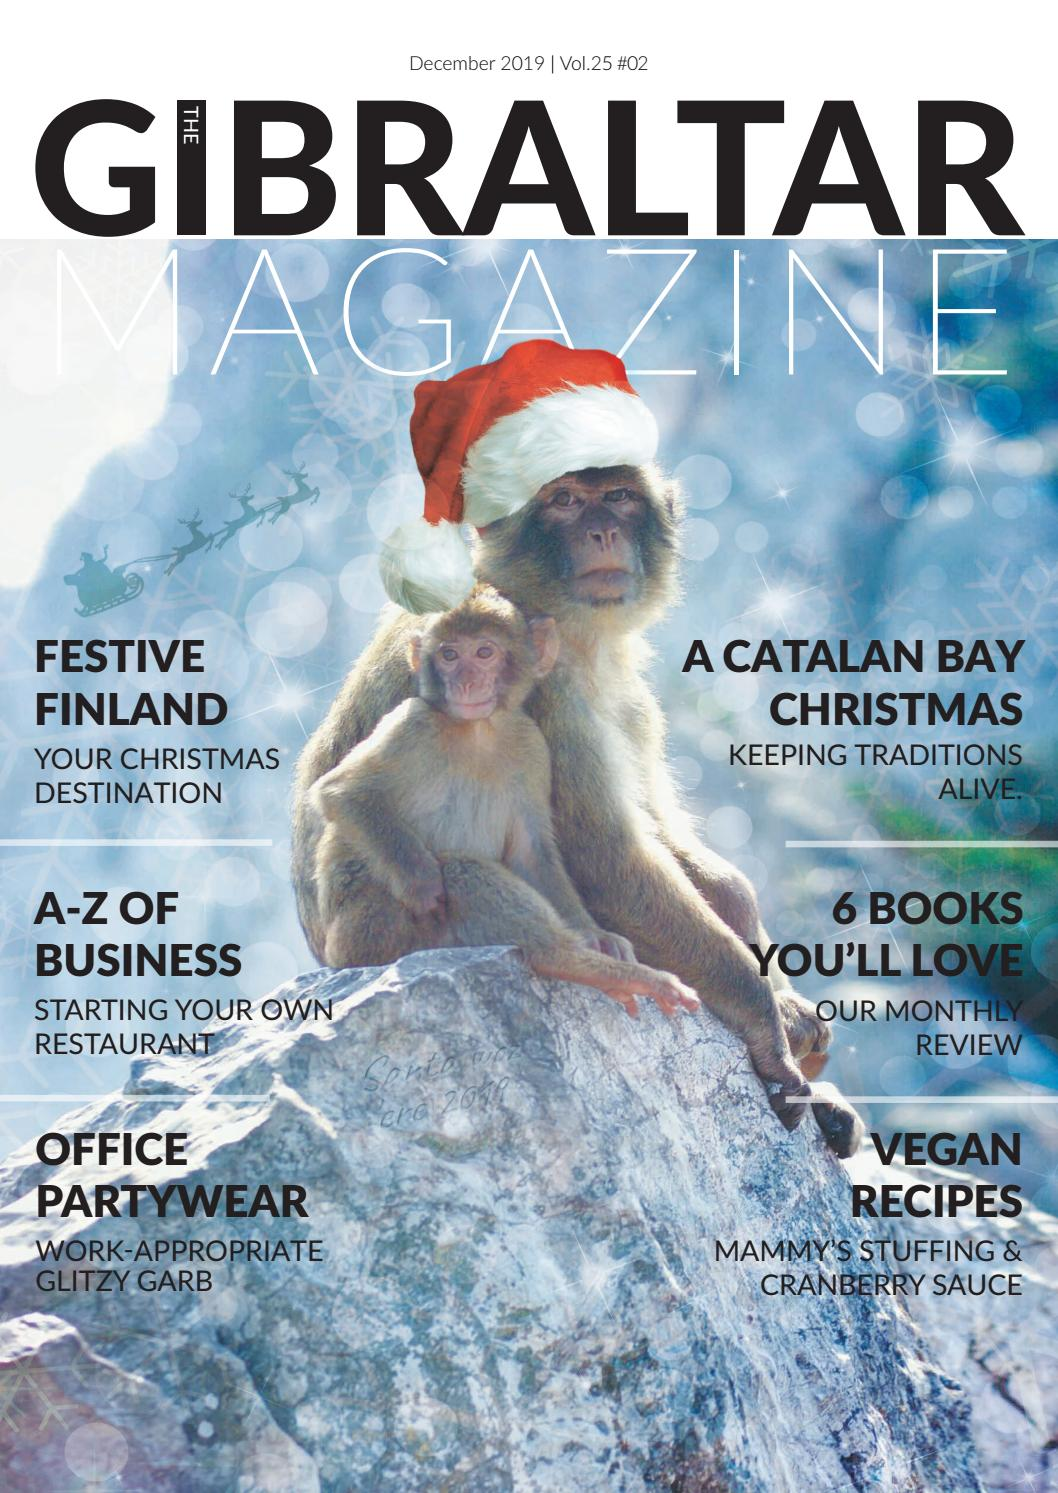 The Gibraltar Magazine December 2019 by Rock Publishing Ltd